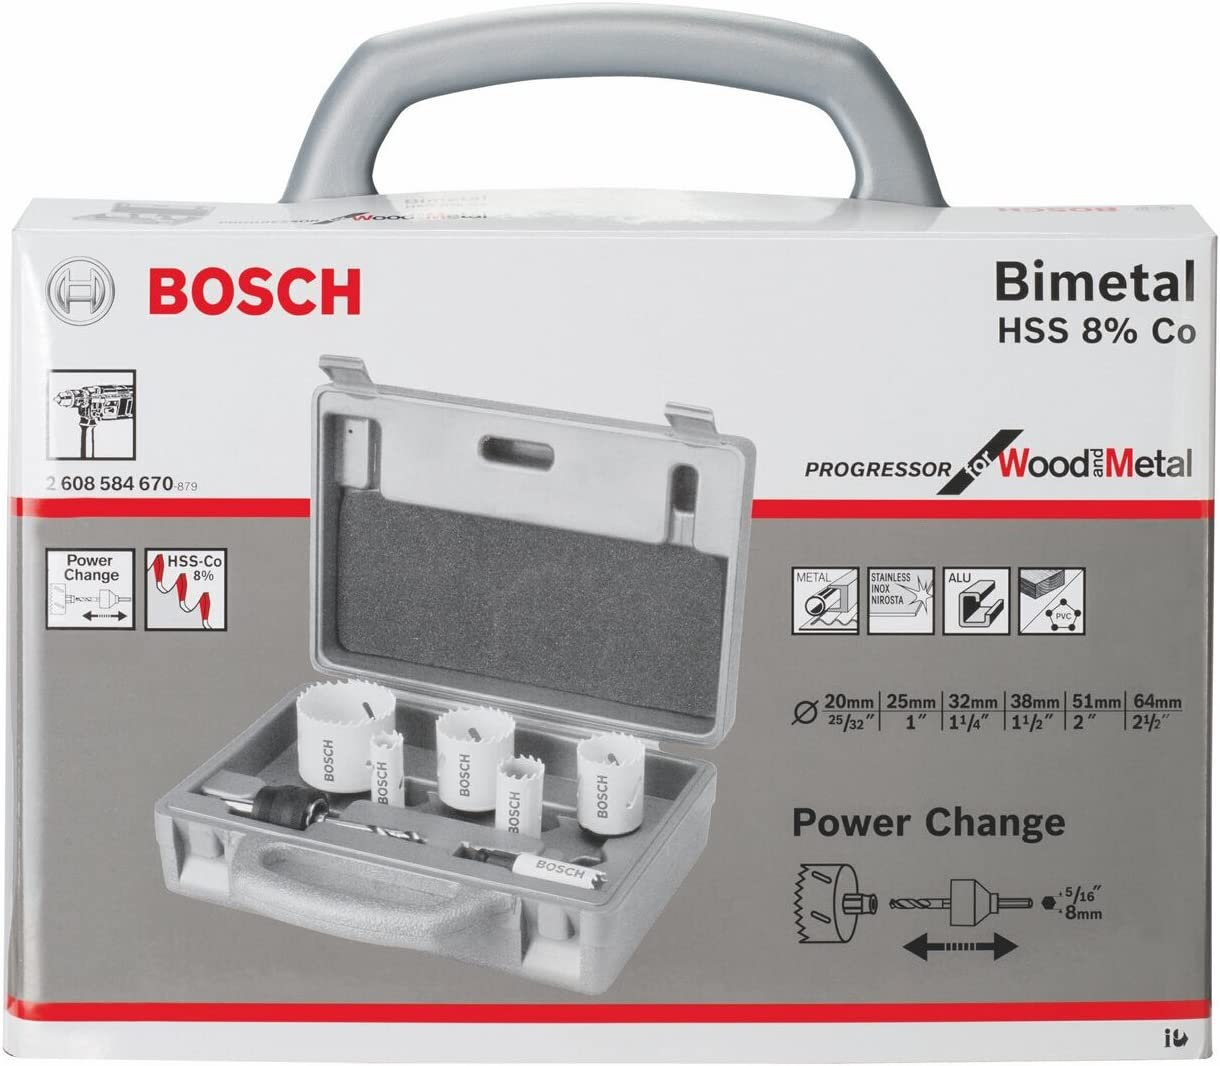 25mm Bosch 2608584620 Progressor Holesaw For Wood and Metal